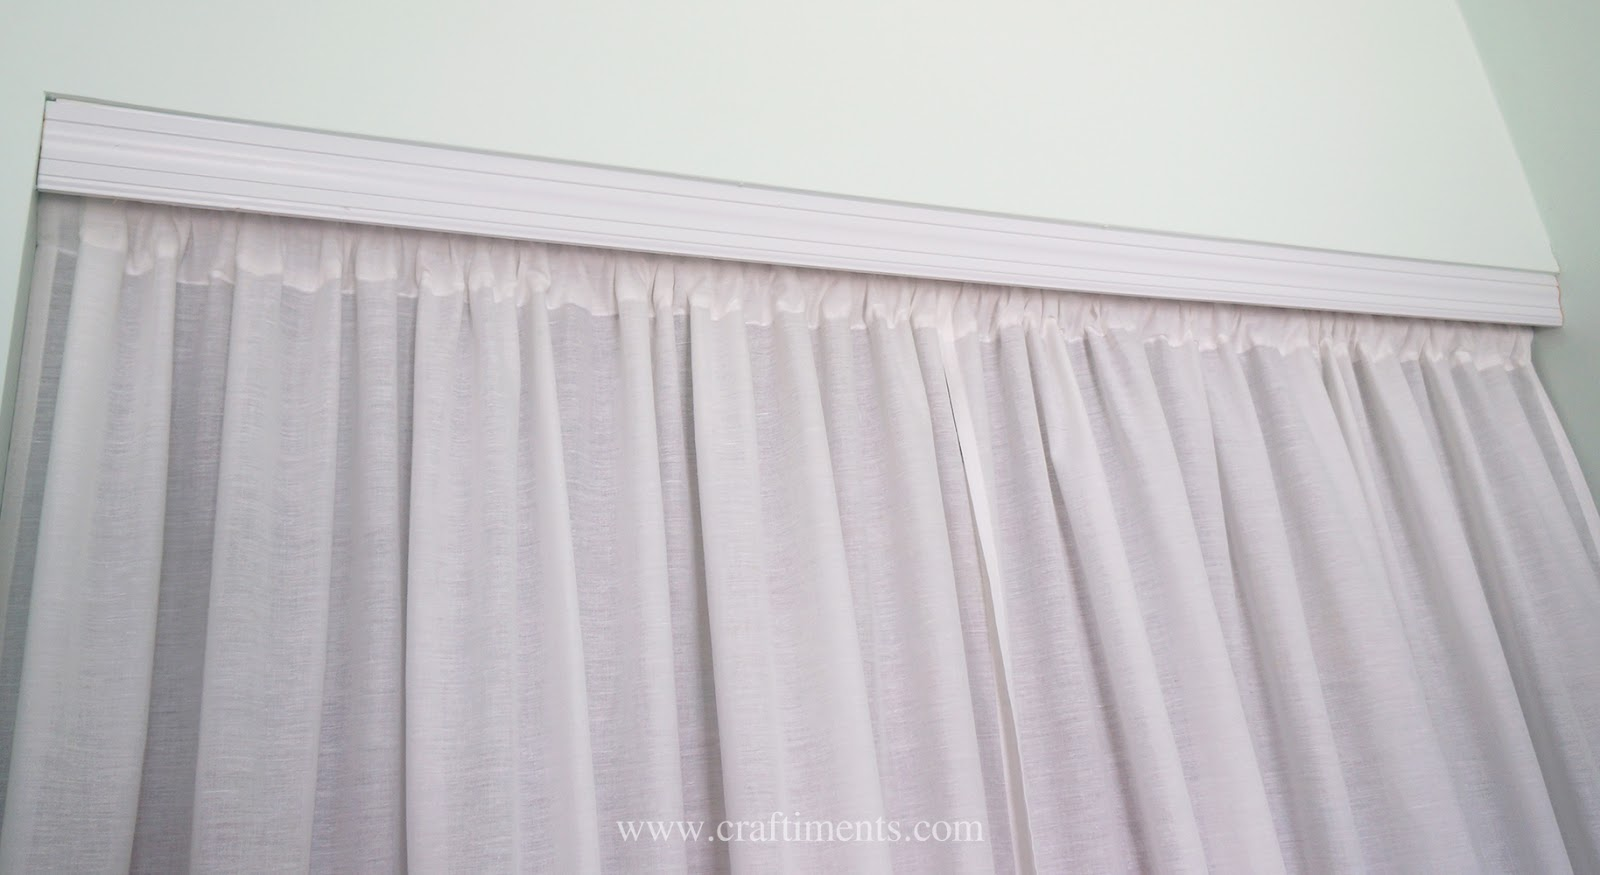 casing is sewn into twin bed sheets to create curtains that replace ...